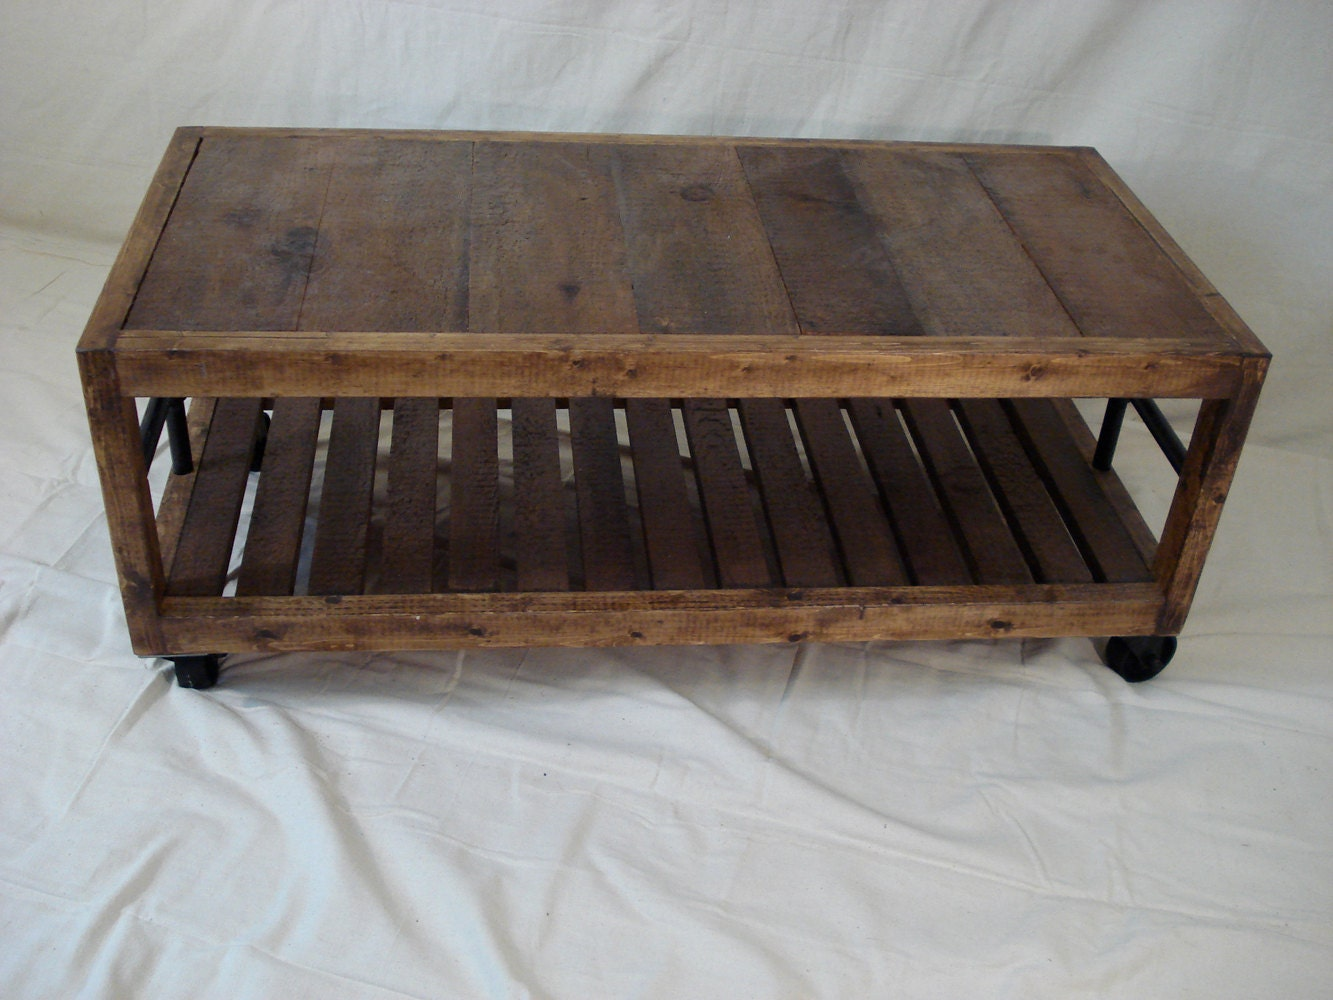 Shipping Crate Coffee Table By Retroworksstudio On Etsy